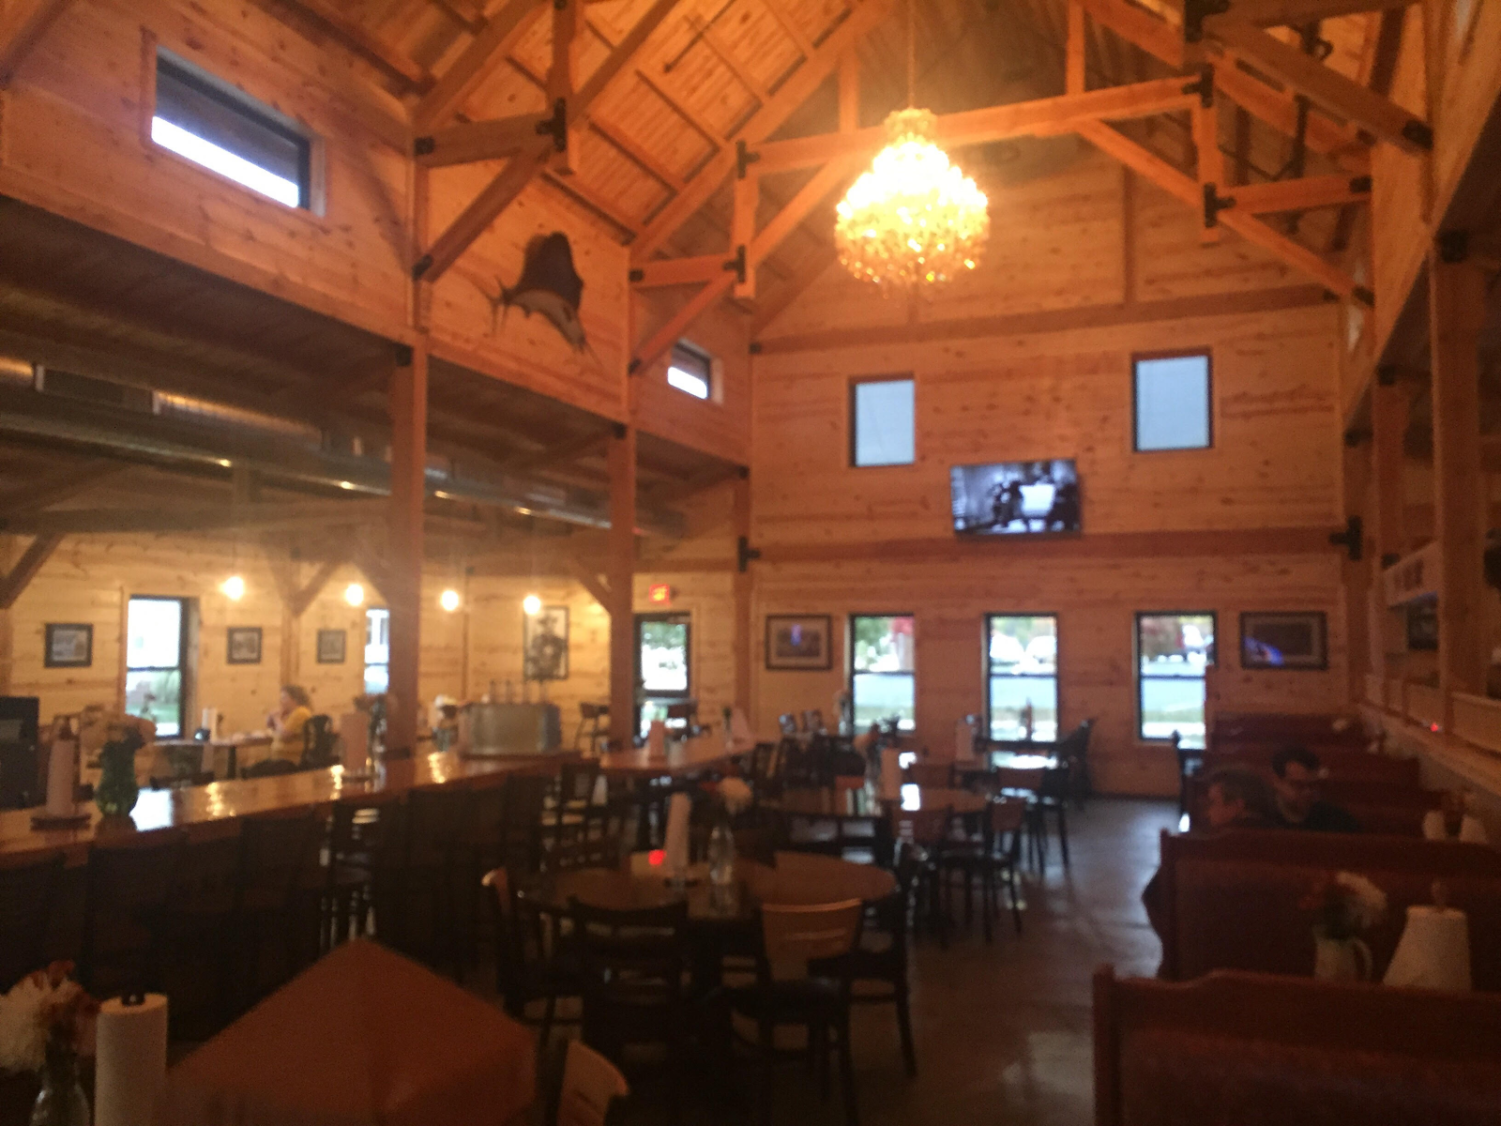 The inside of the Manchester location of Smokee Mo's simulates a barn theme.